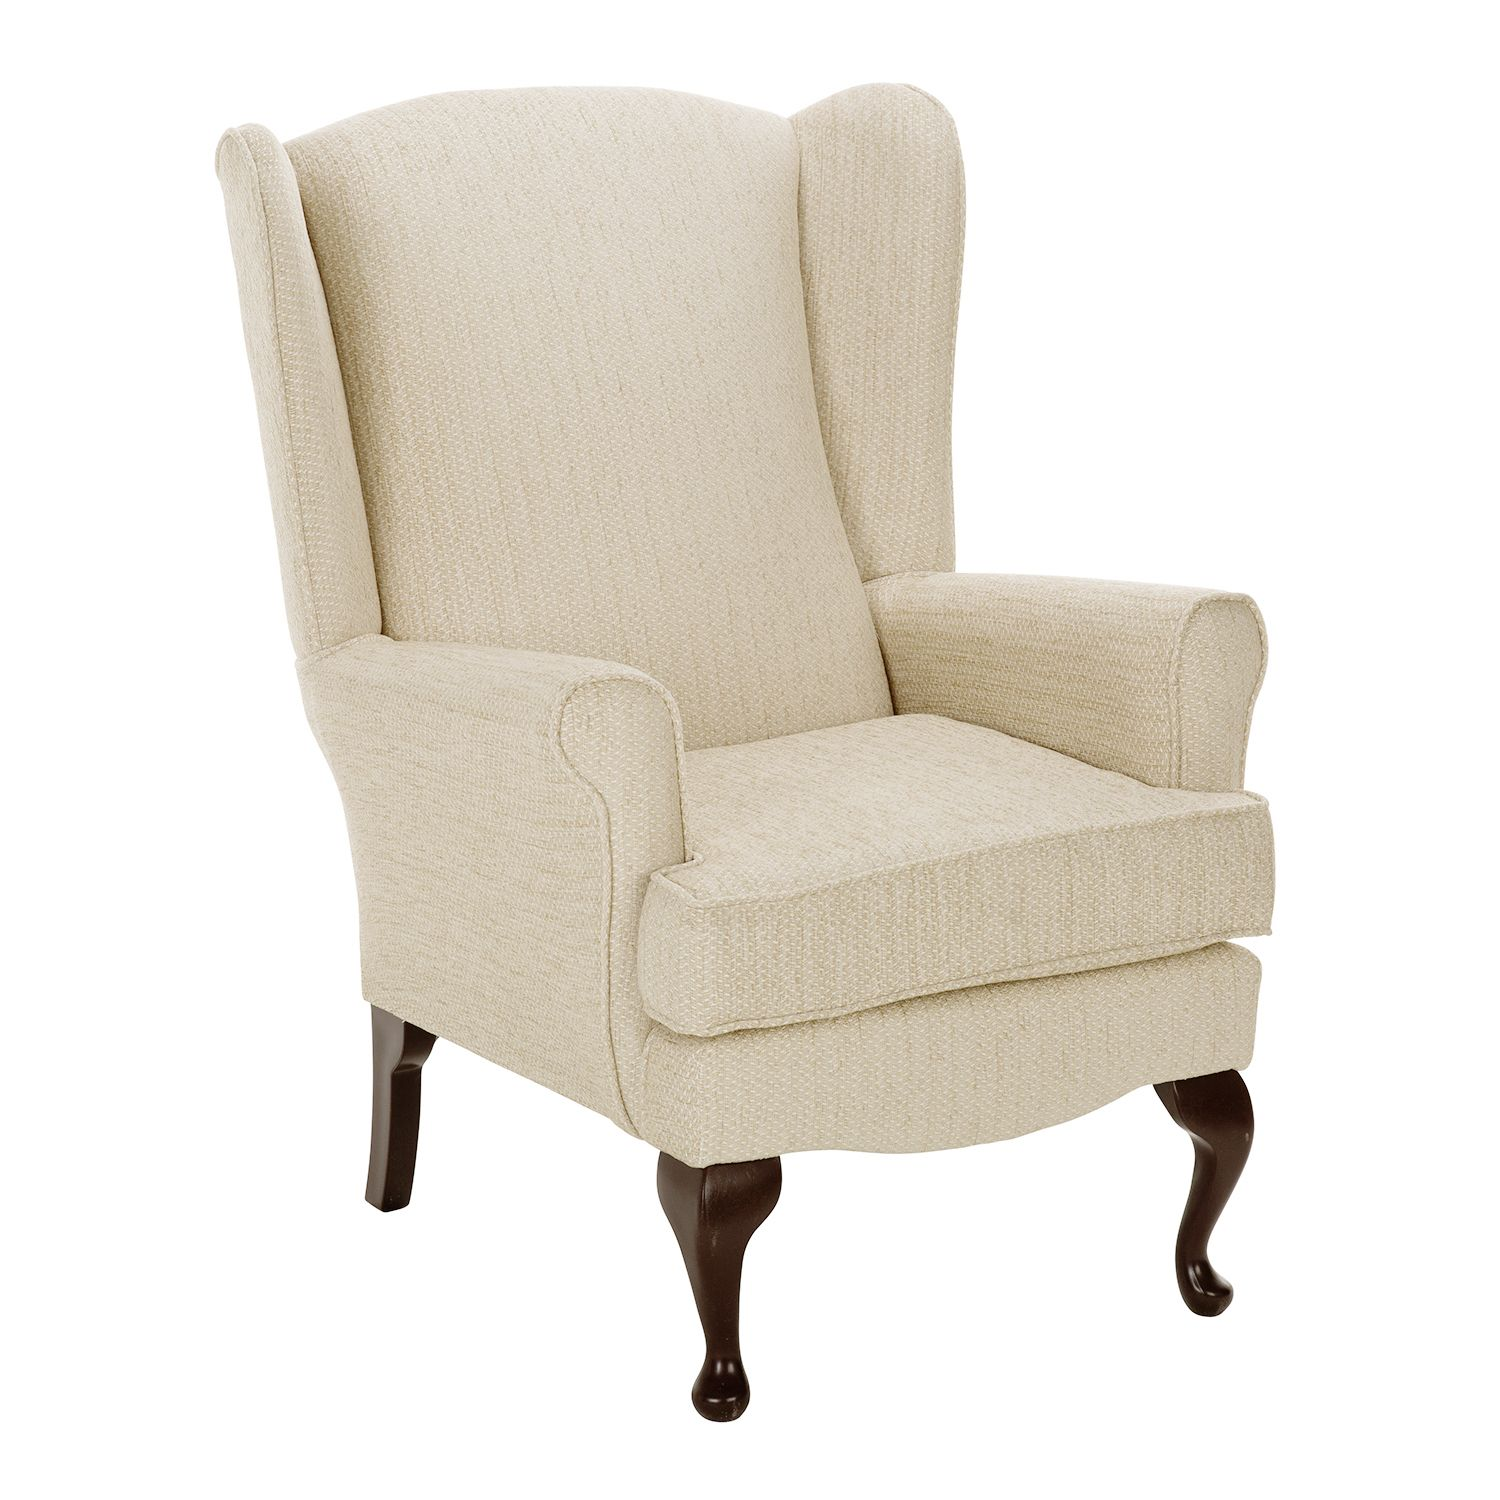 Mayfield Wingback Armchair Next Day Delivery Mayfield Wingback